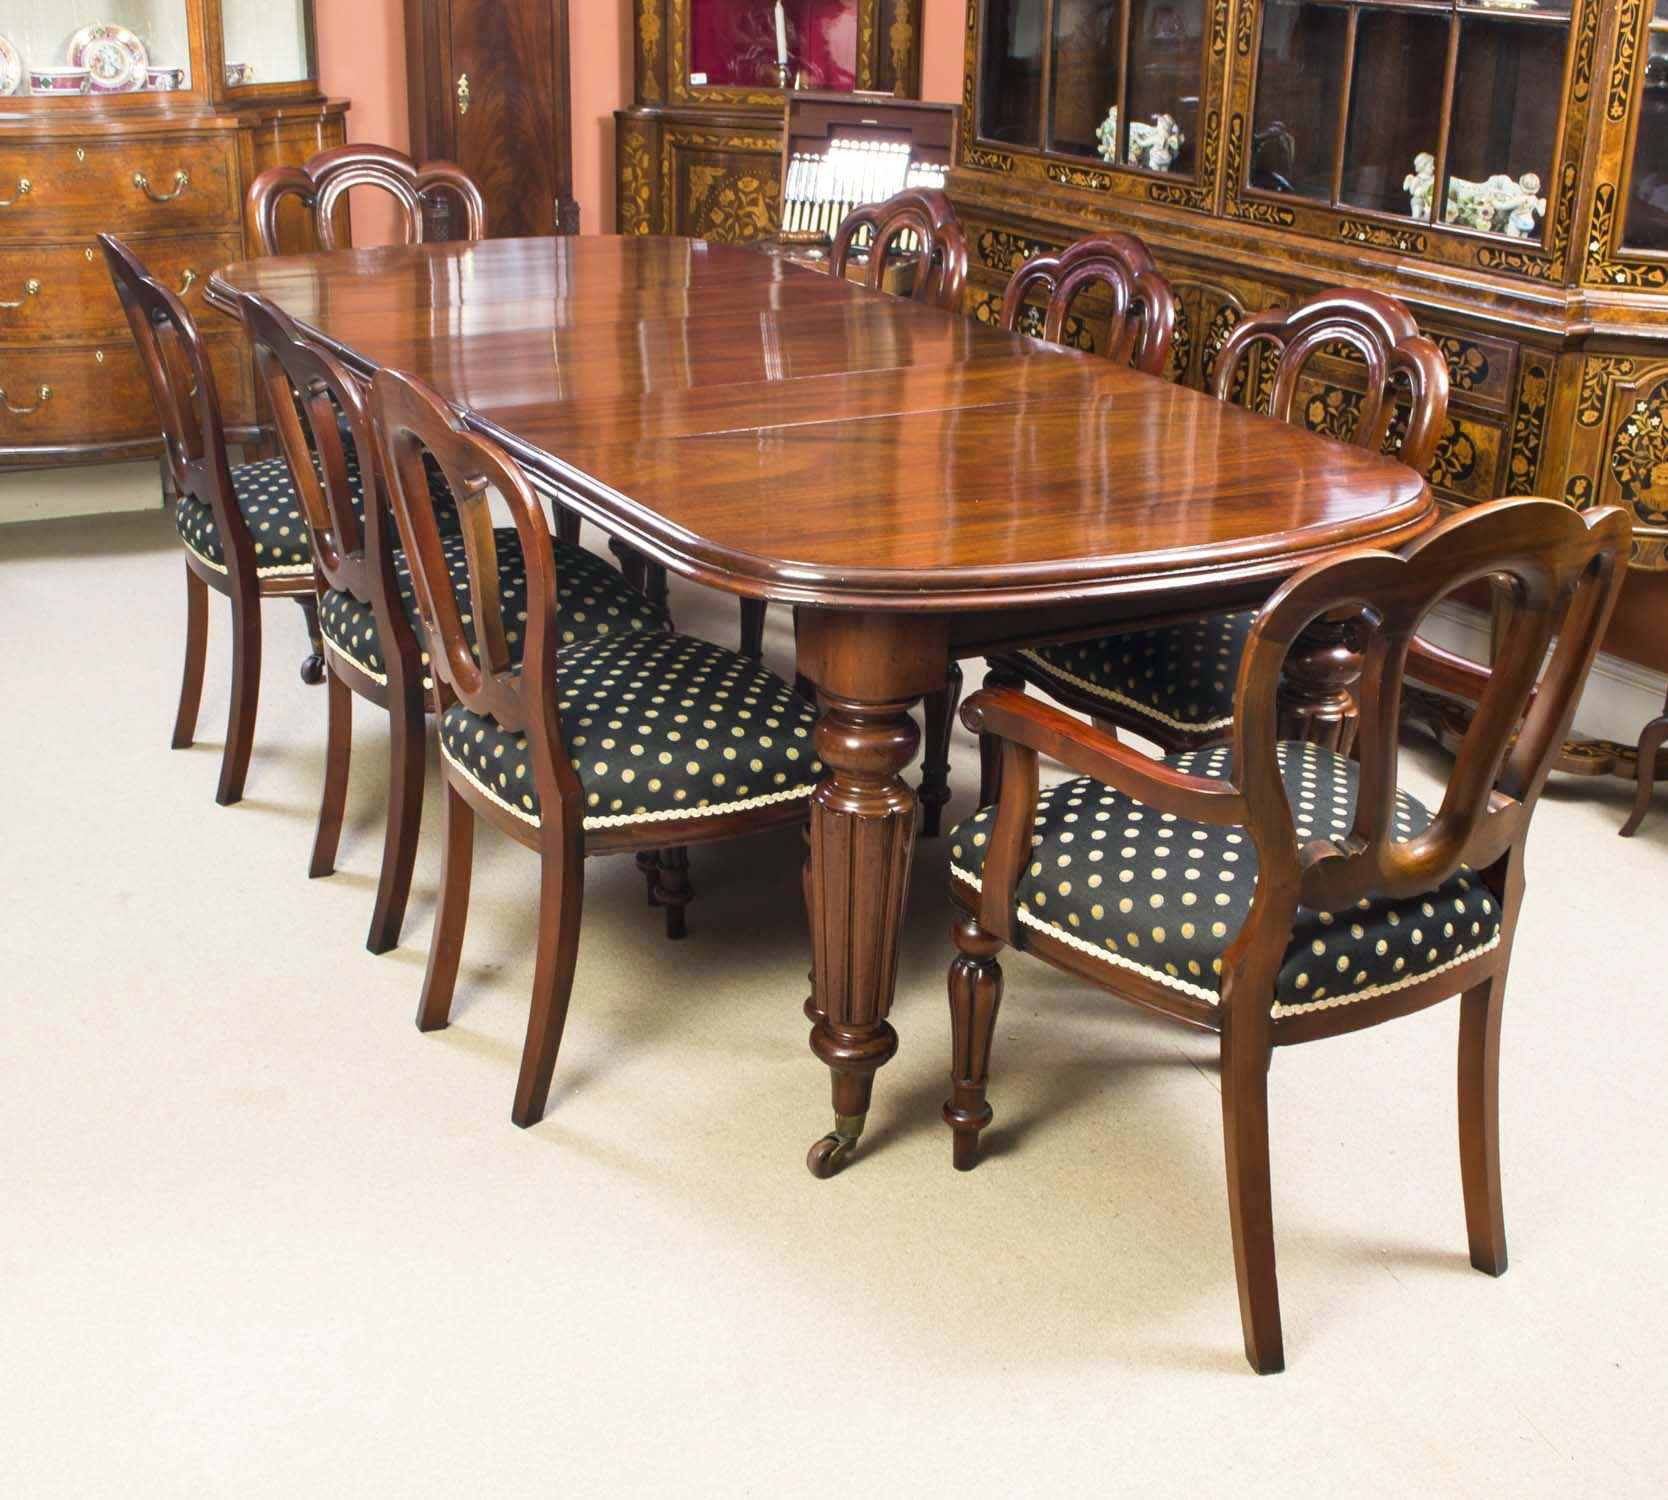 06314b Antique Victorian Mahogany Dining Table 8 Chairs C1870 1